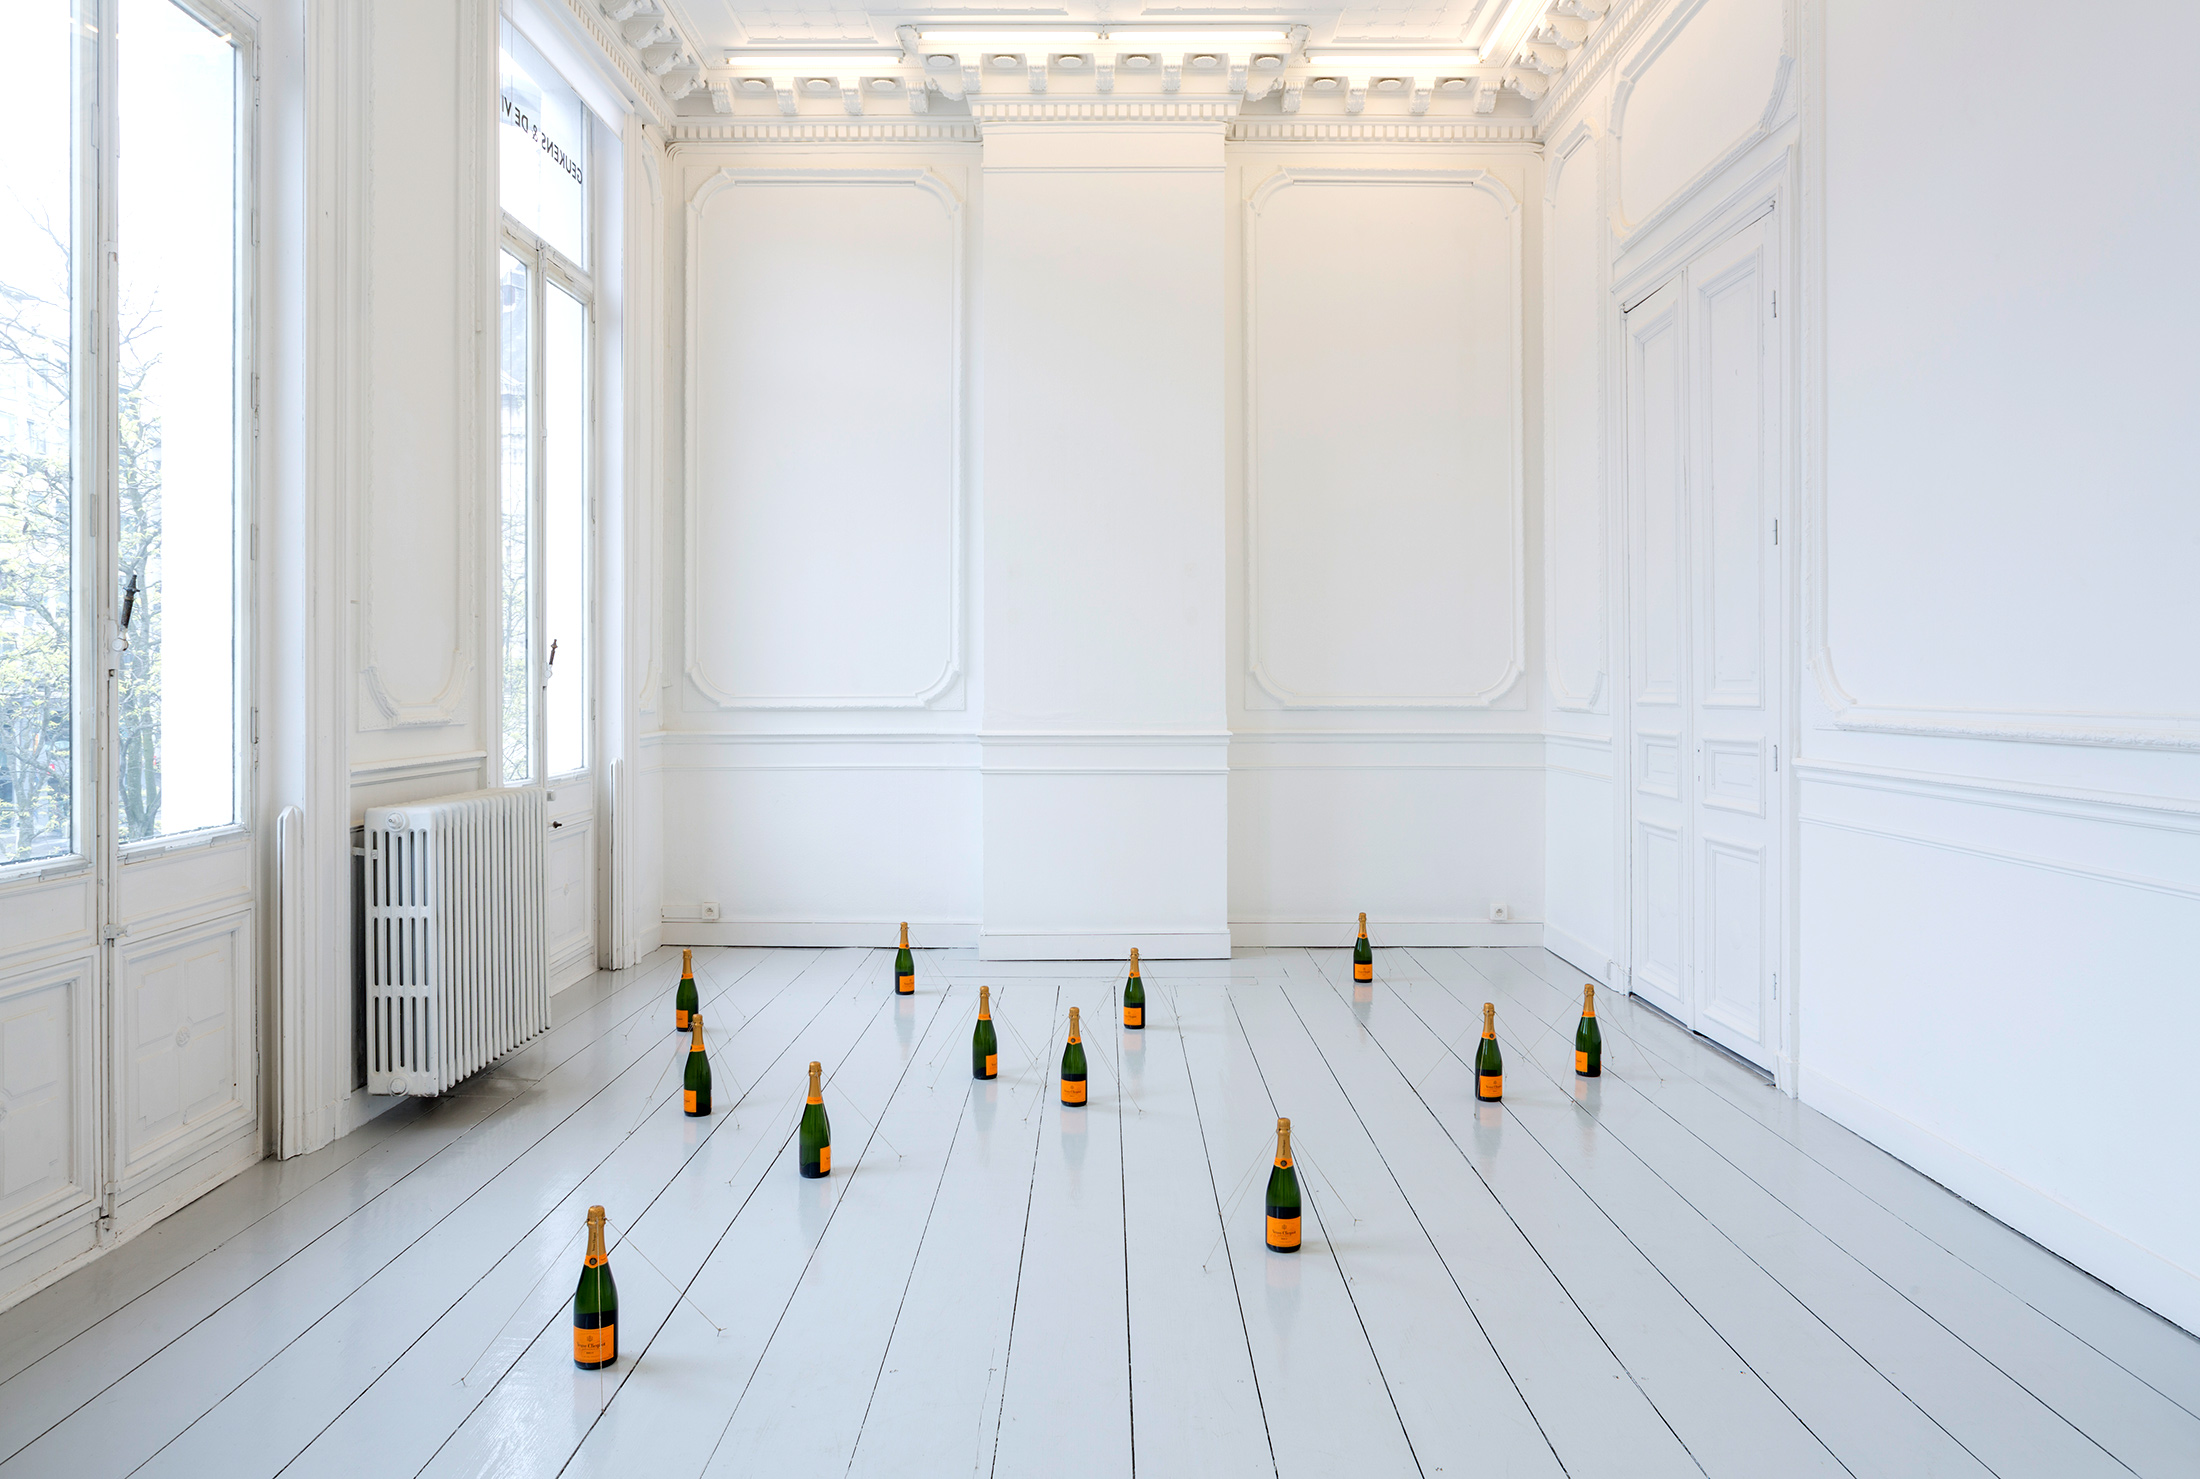 peter de meyer, installation, champagne bottles, contemporary installation, explore art